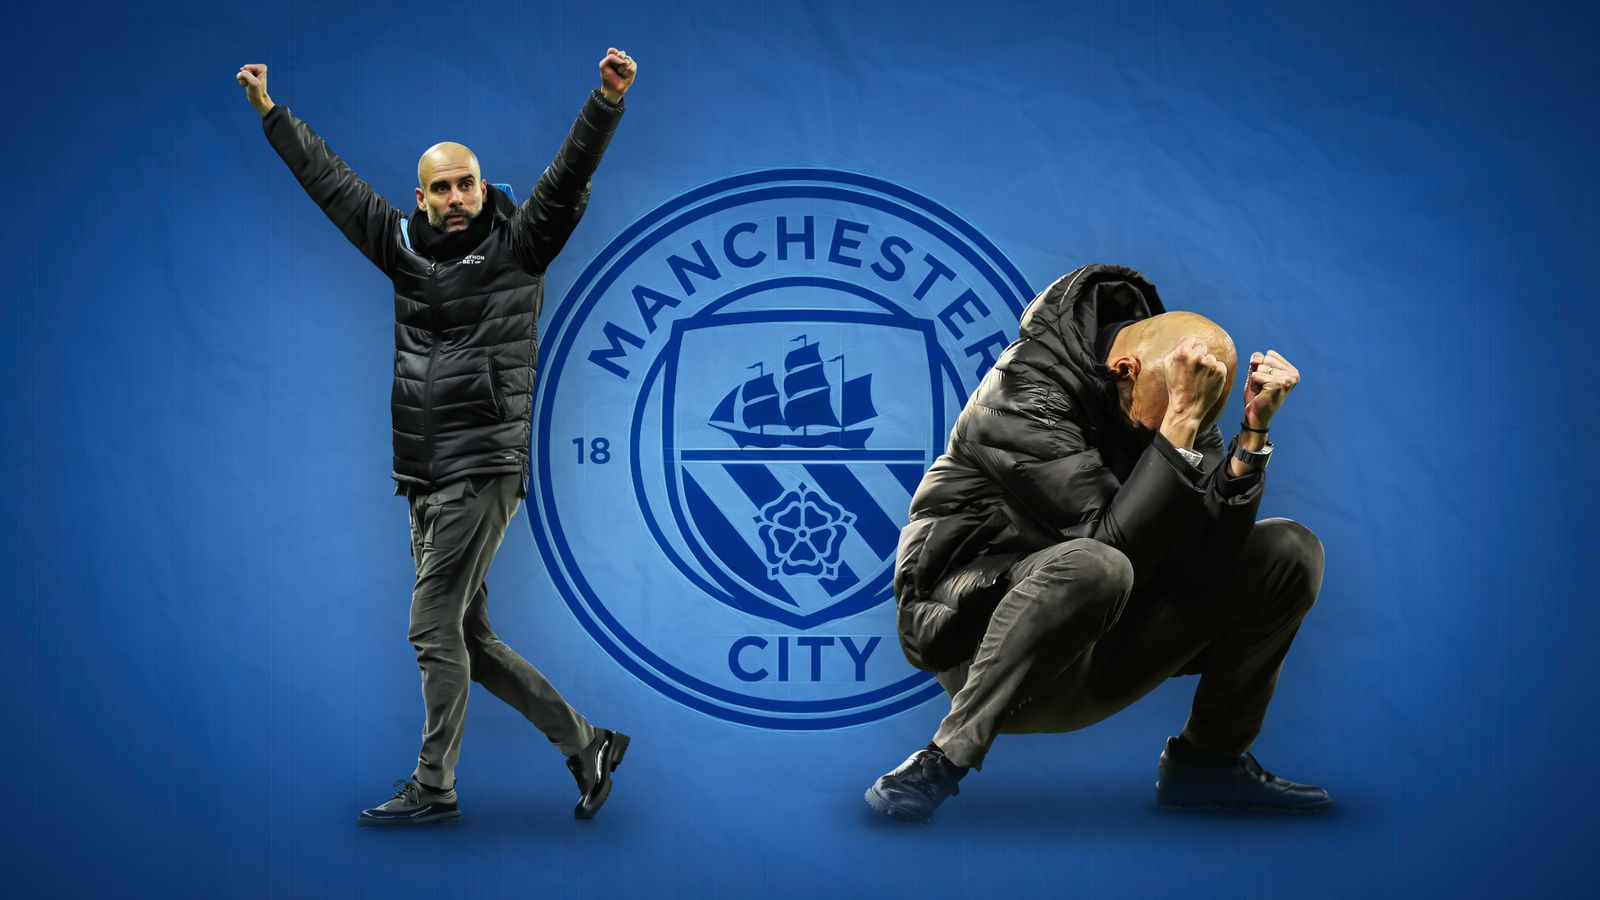 Pep Guardiola's Manchester City have lost intensity and the stats show it - Sky Sports